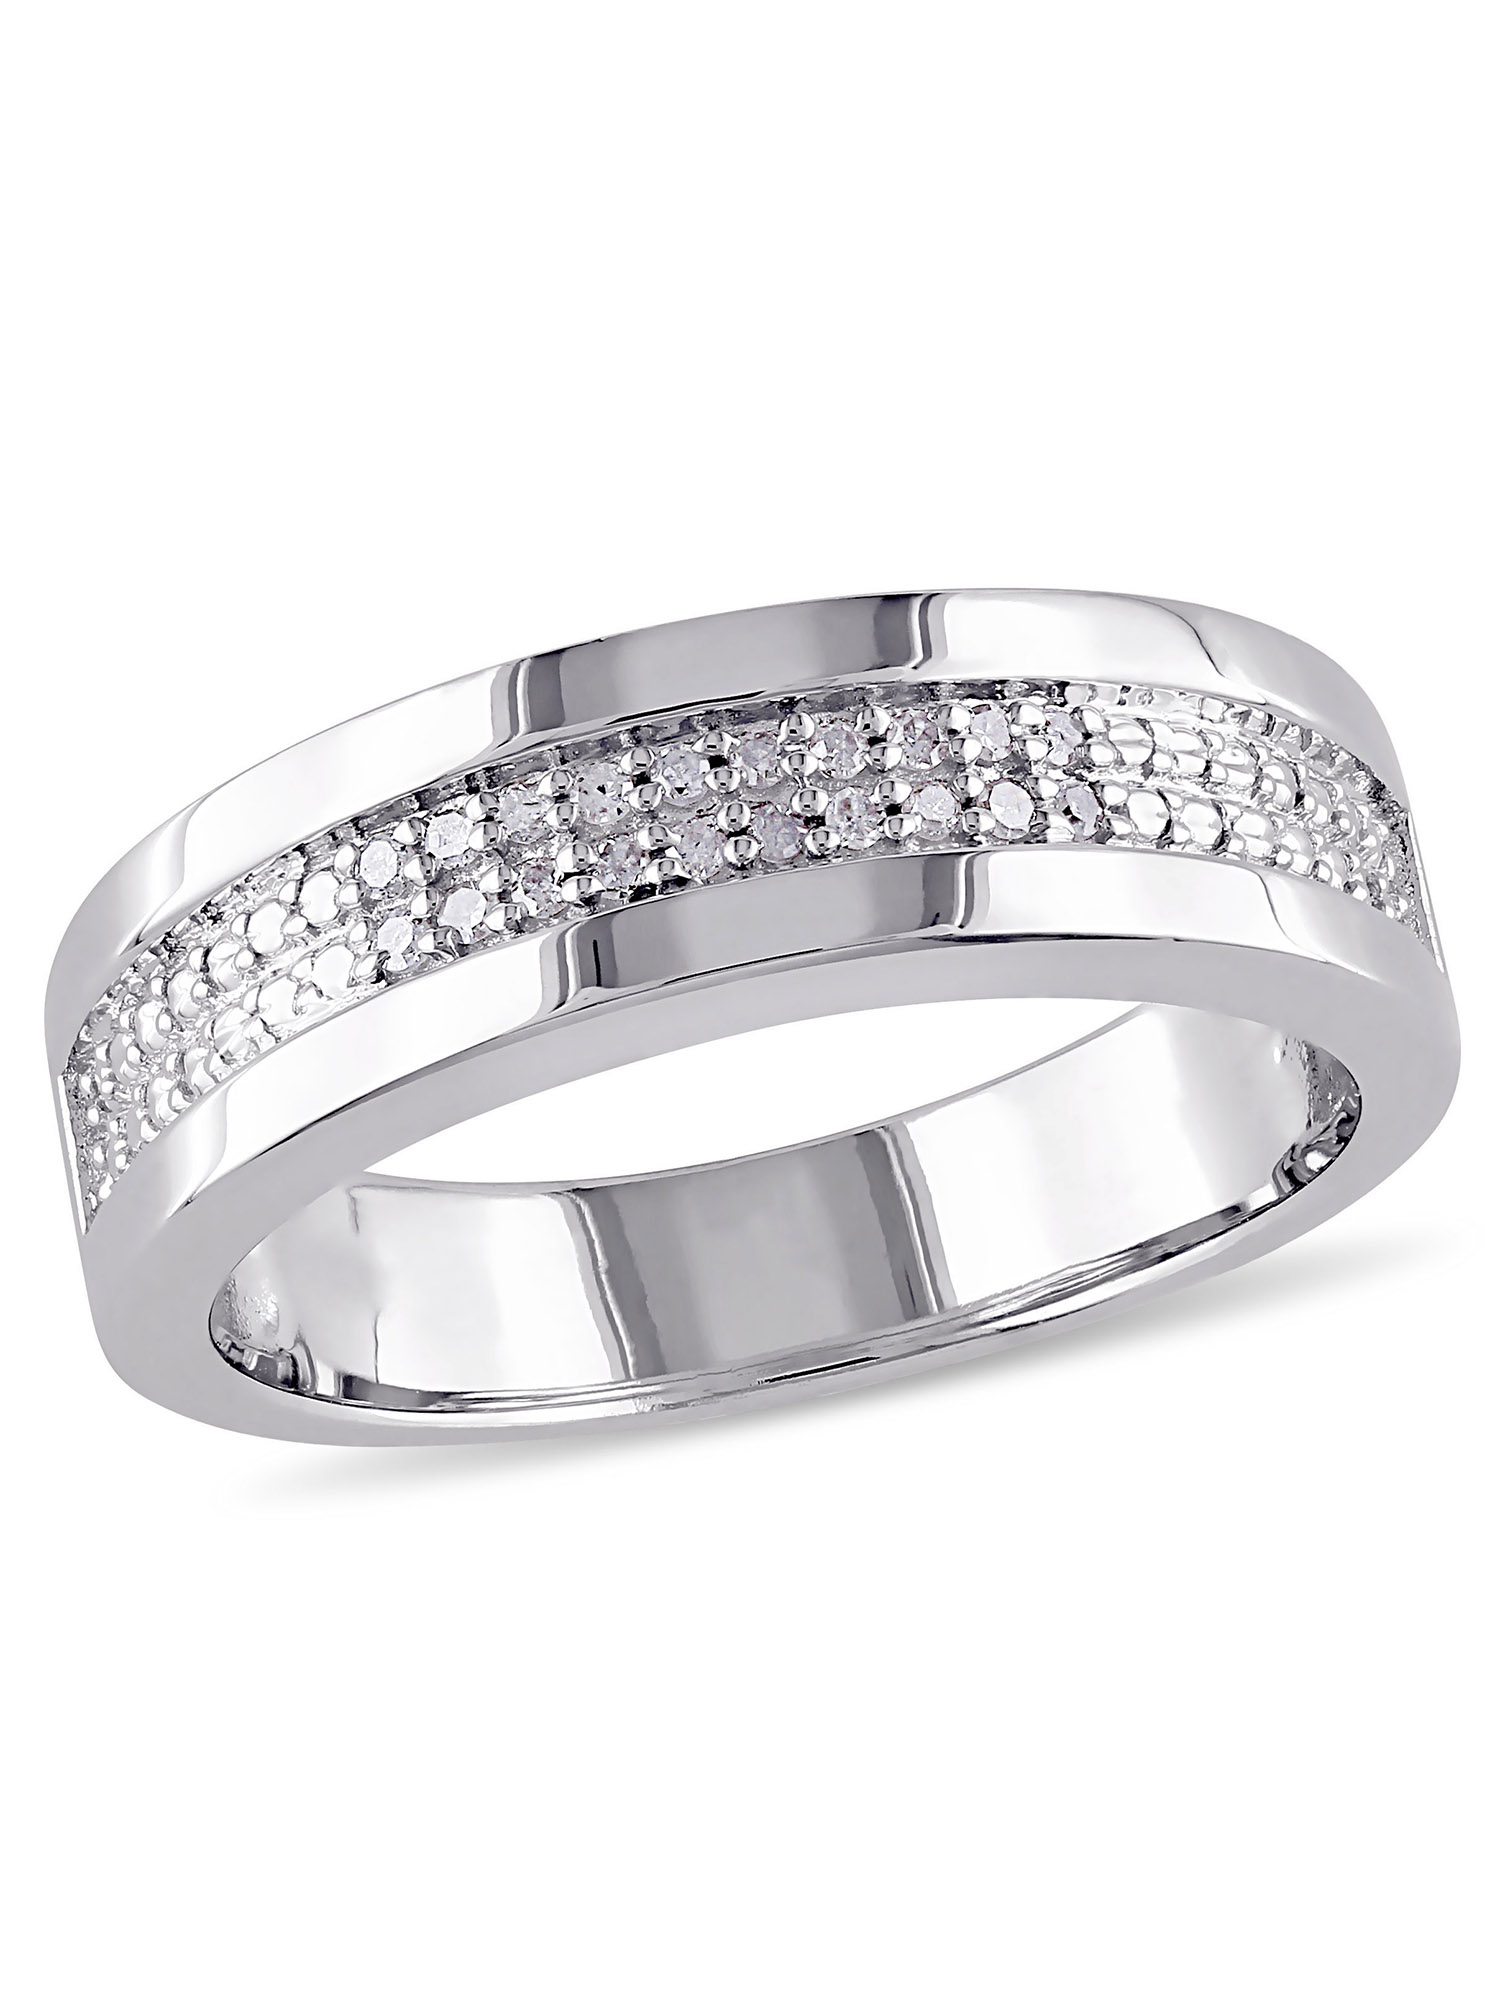 100S JEWELRY Tungsten Rings for Men Wedding Band White Gold Brick Pattern Rhodium Plated Sizes 8-16